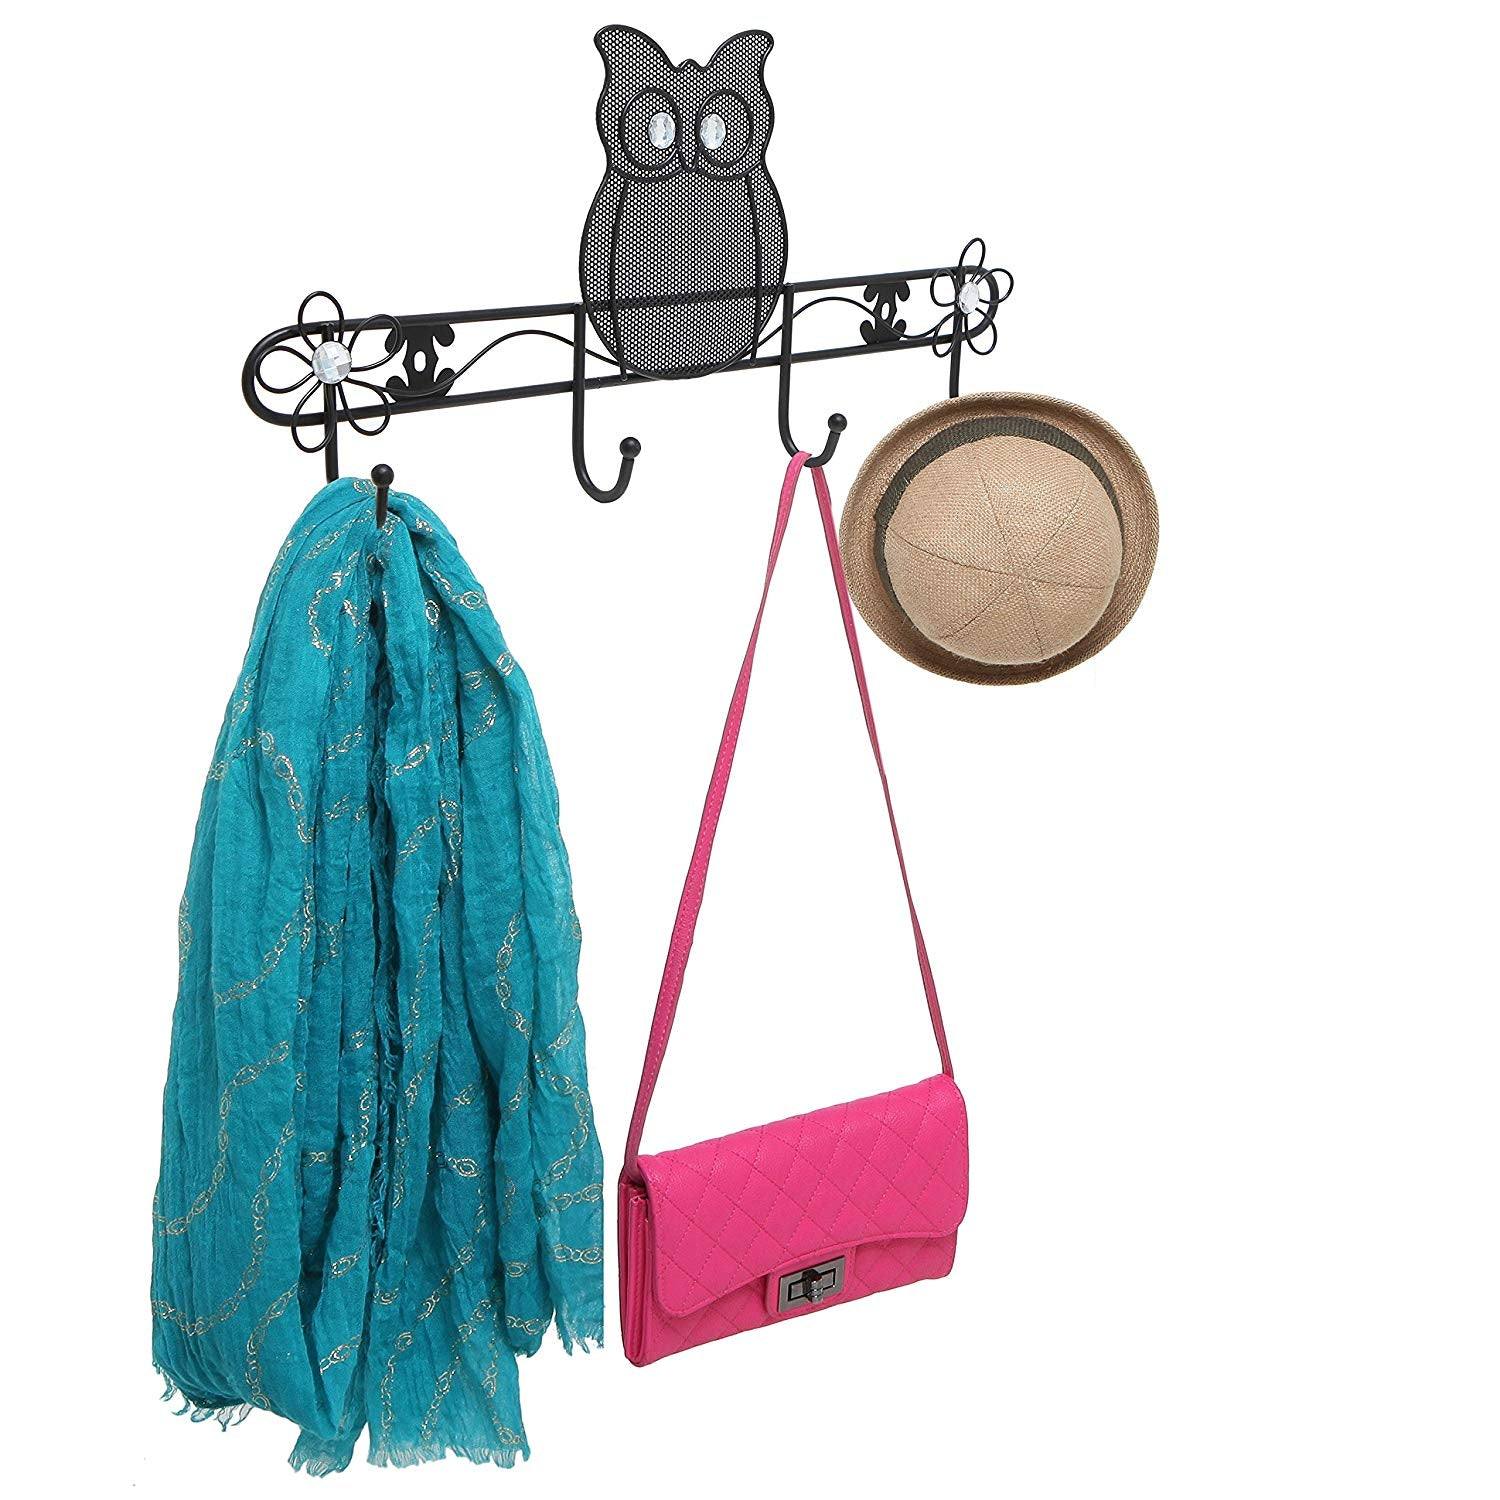 Owl & Flowers Design Black Metal Wall Mounted Wire Mesh Coat Rack / 4 Hook Hanging Storage Organizer